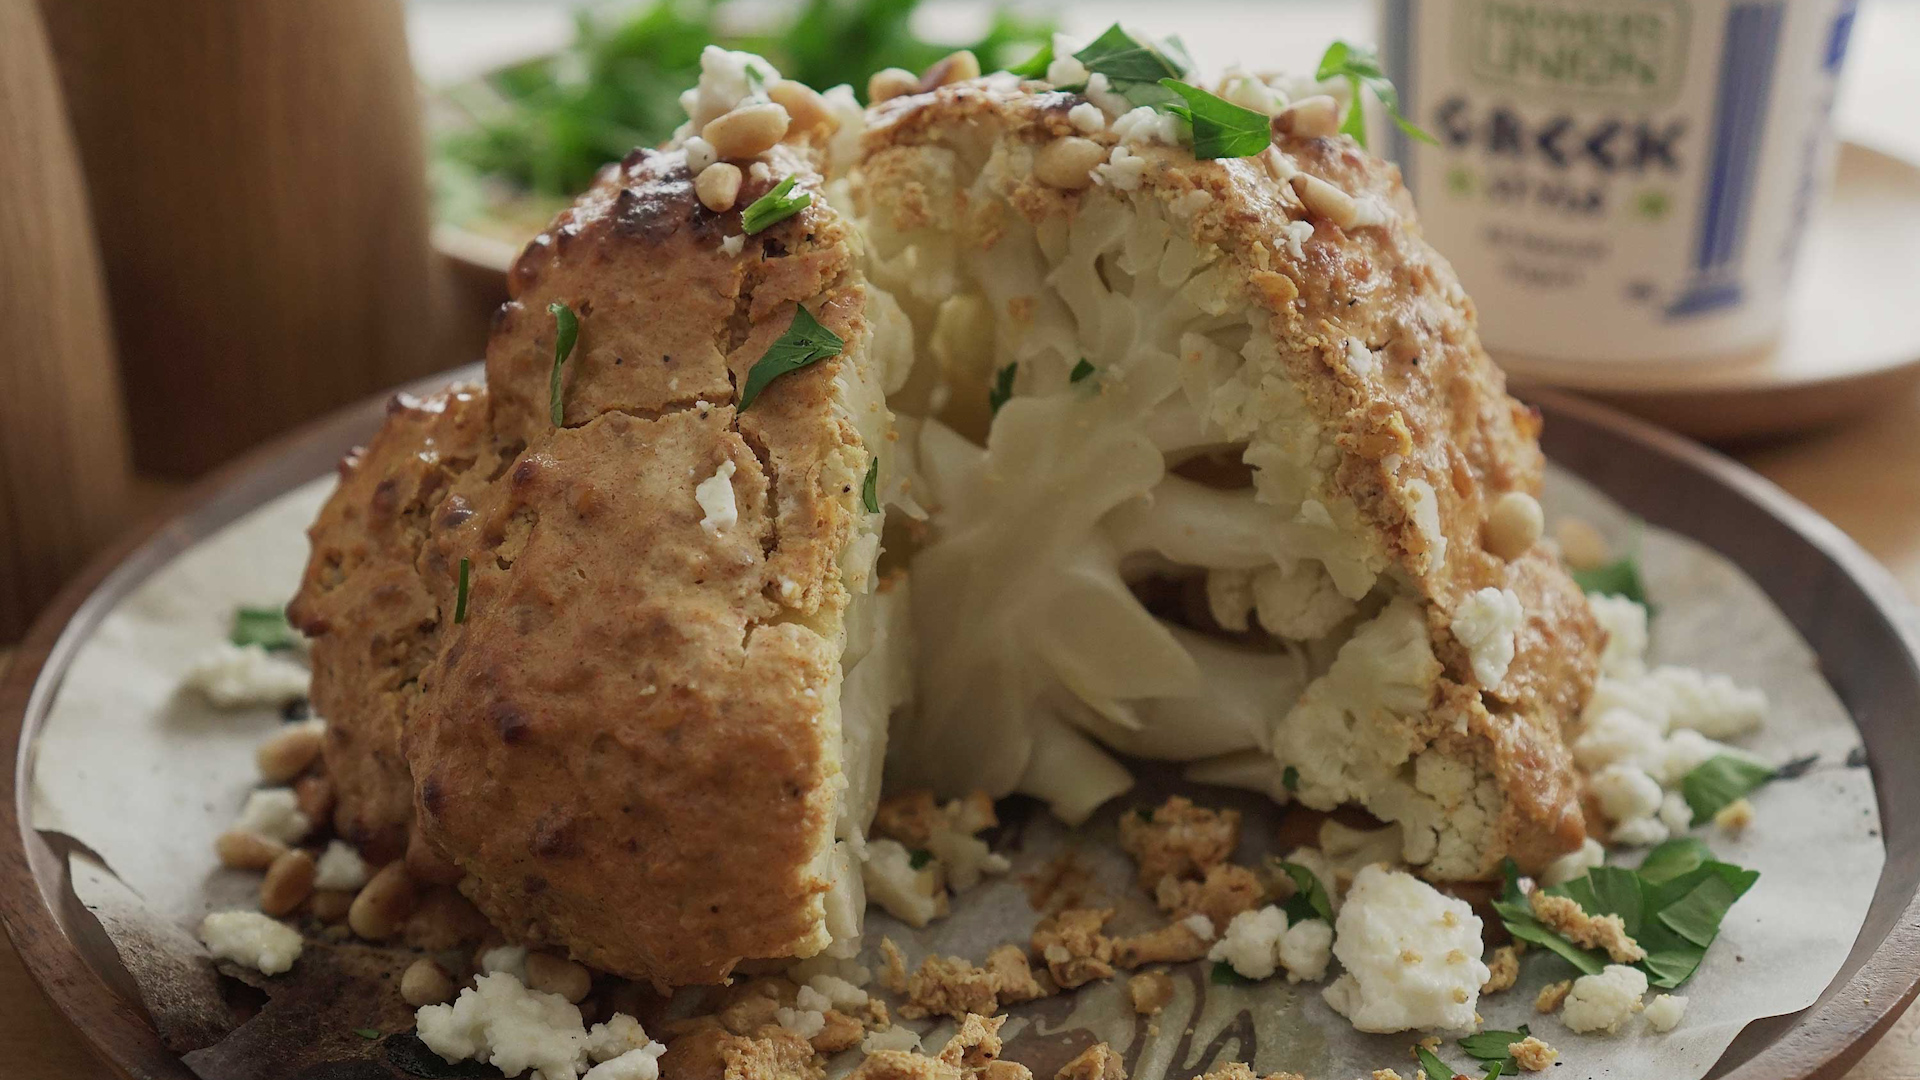 Roasted Cauliflower With Spiced Yogurt Sauce - 烤酸奶菜花